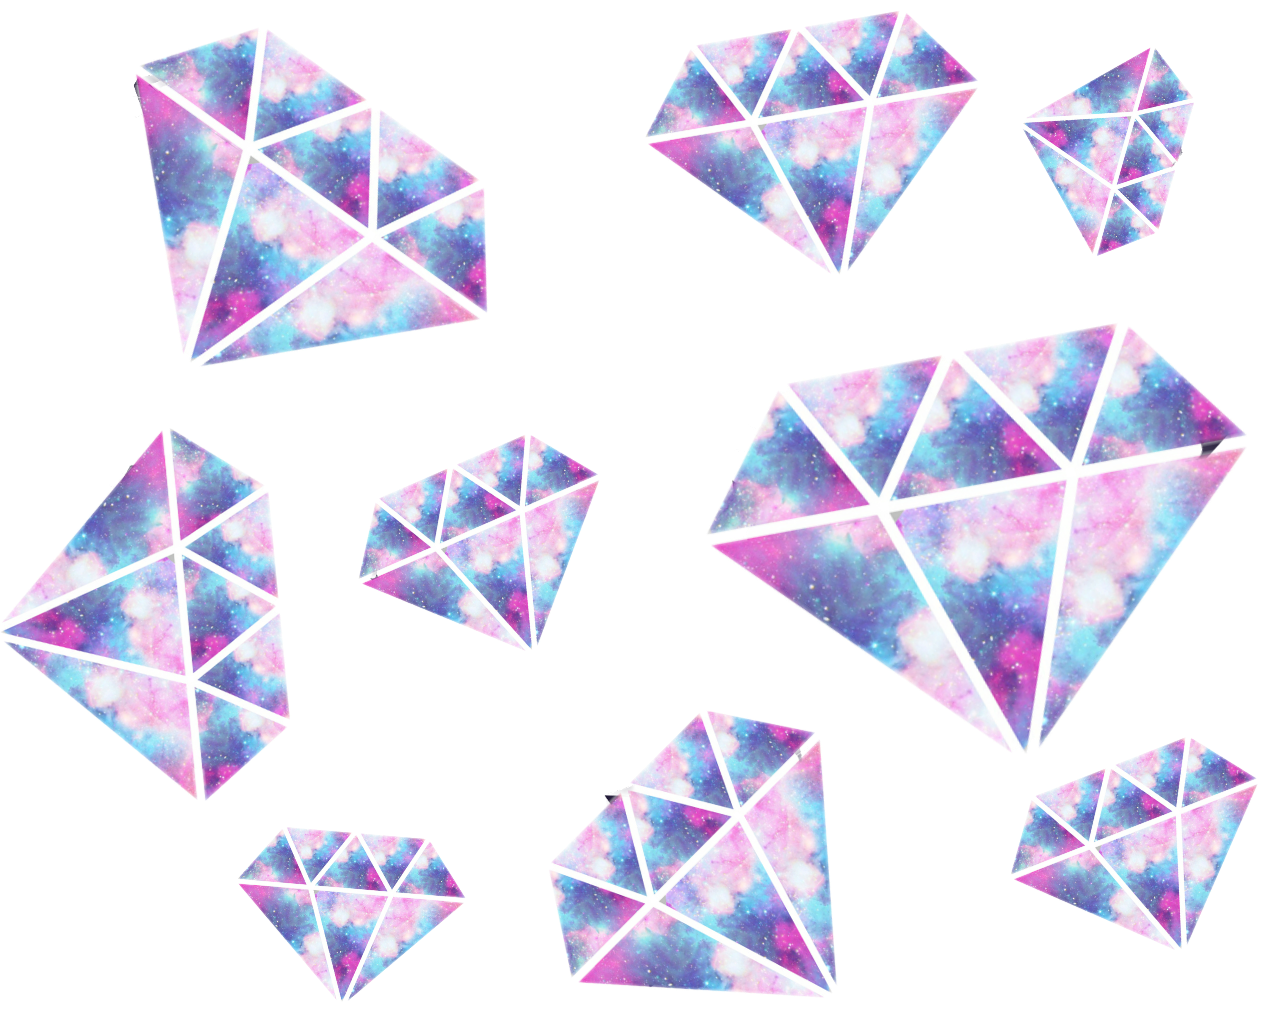 Gem clipart galaxy, Gem galaxy Transparent FREE for download on  WebStockReview 2020